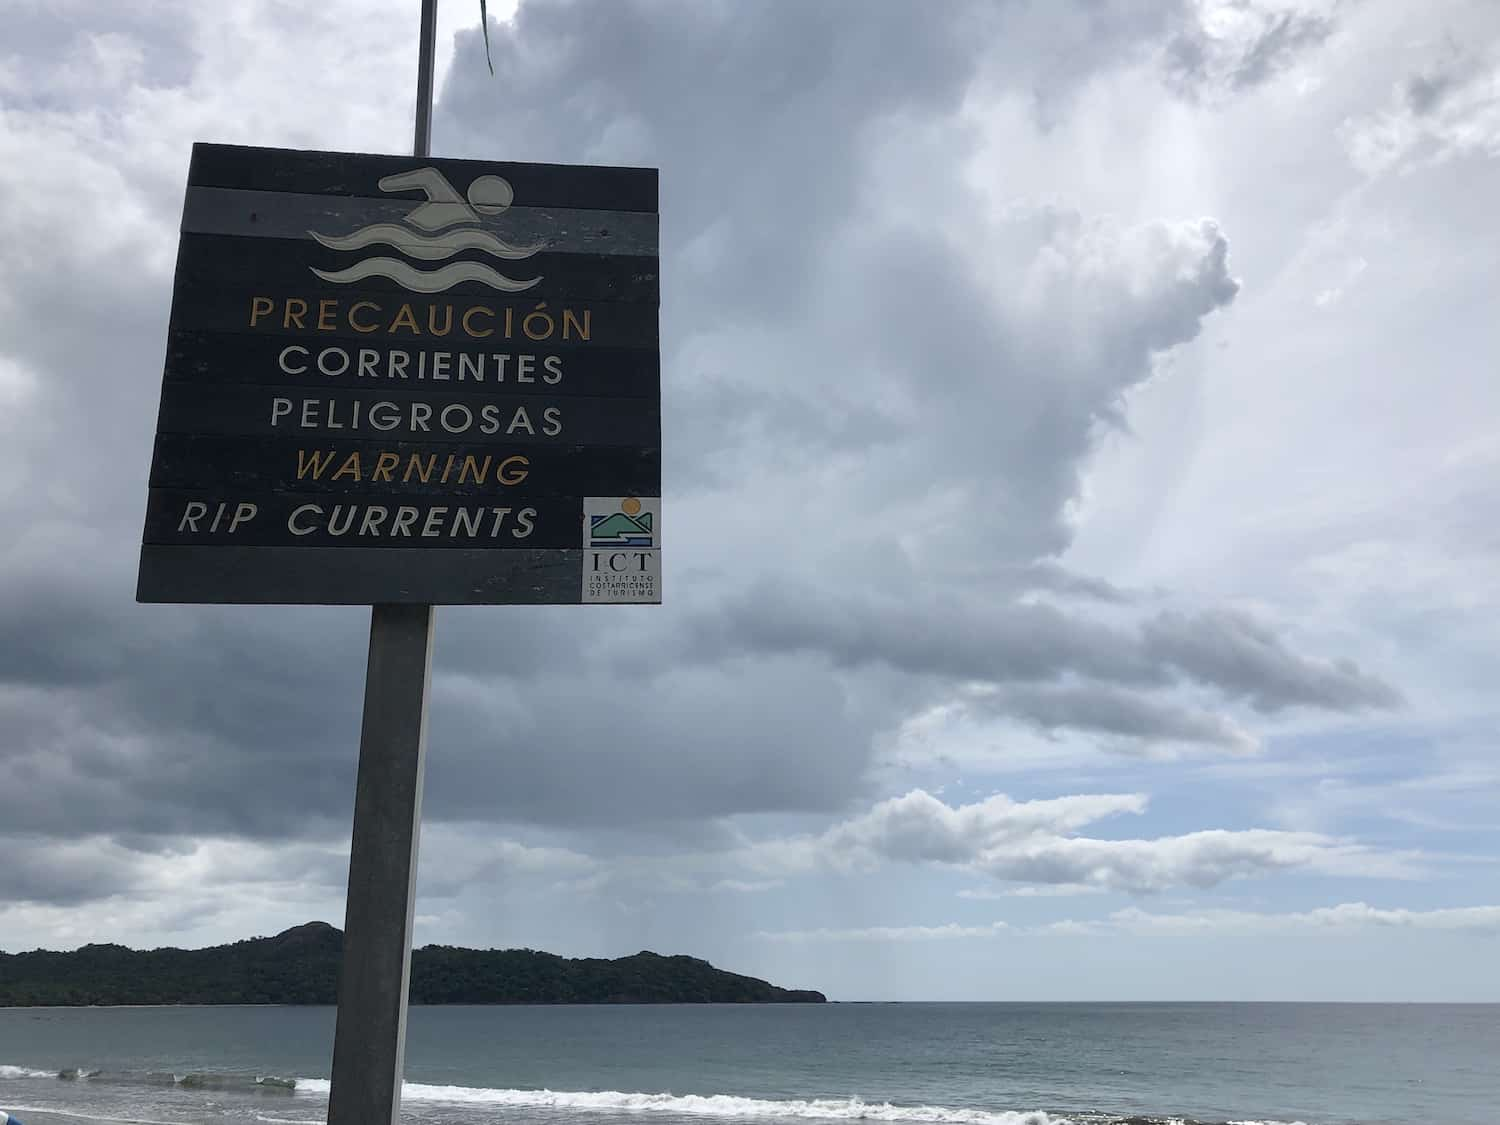 A sign warns swimmers of riptides at a beach in Costa Rica.